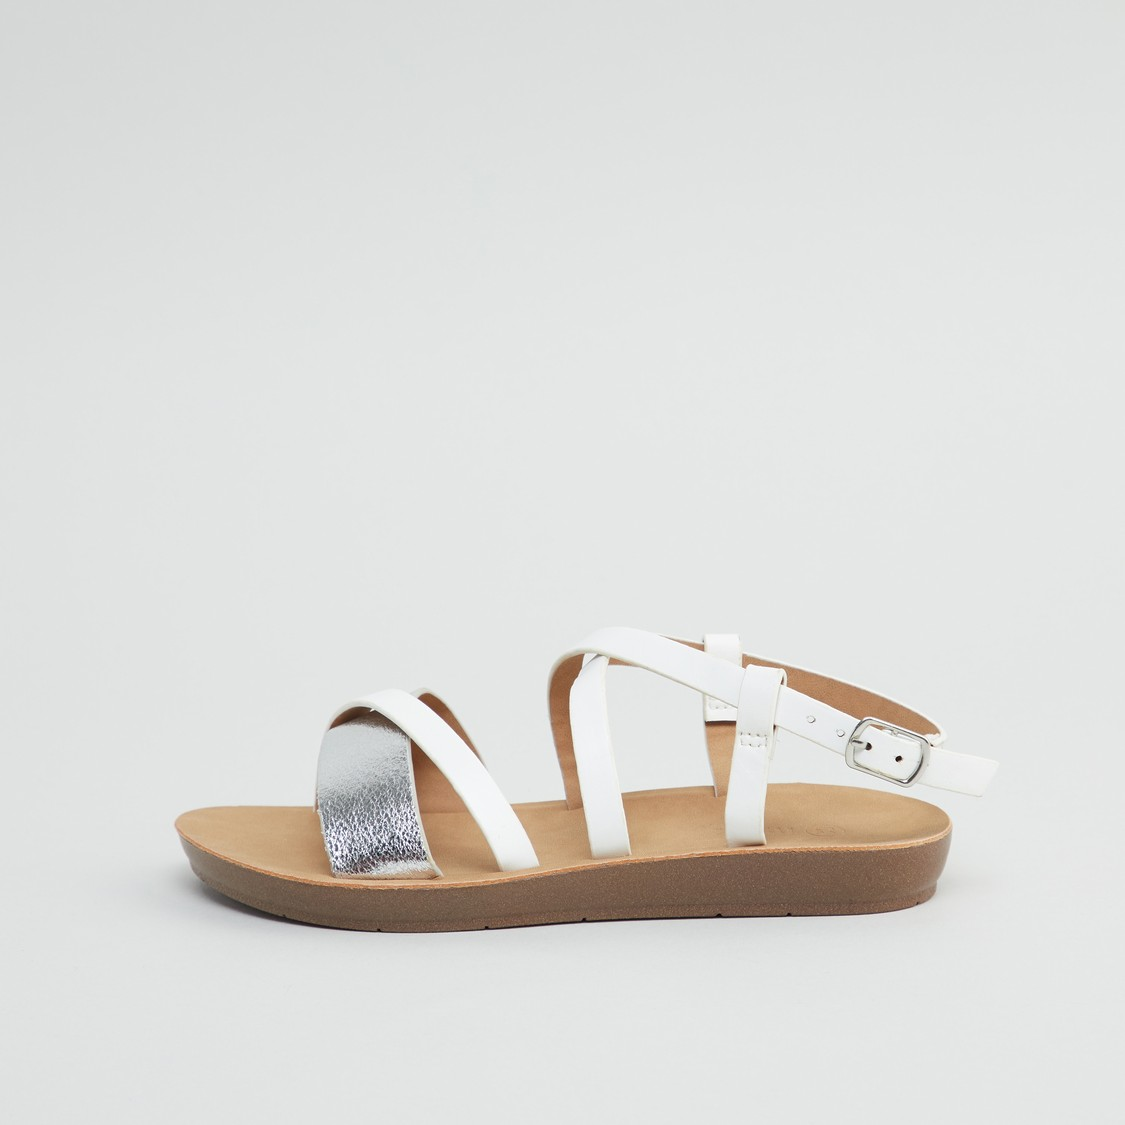 Textured Strap Sandals with Buckle Closure